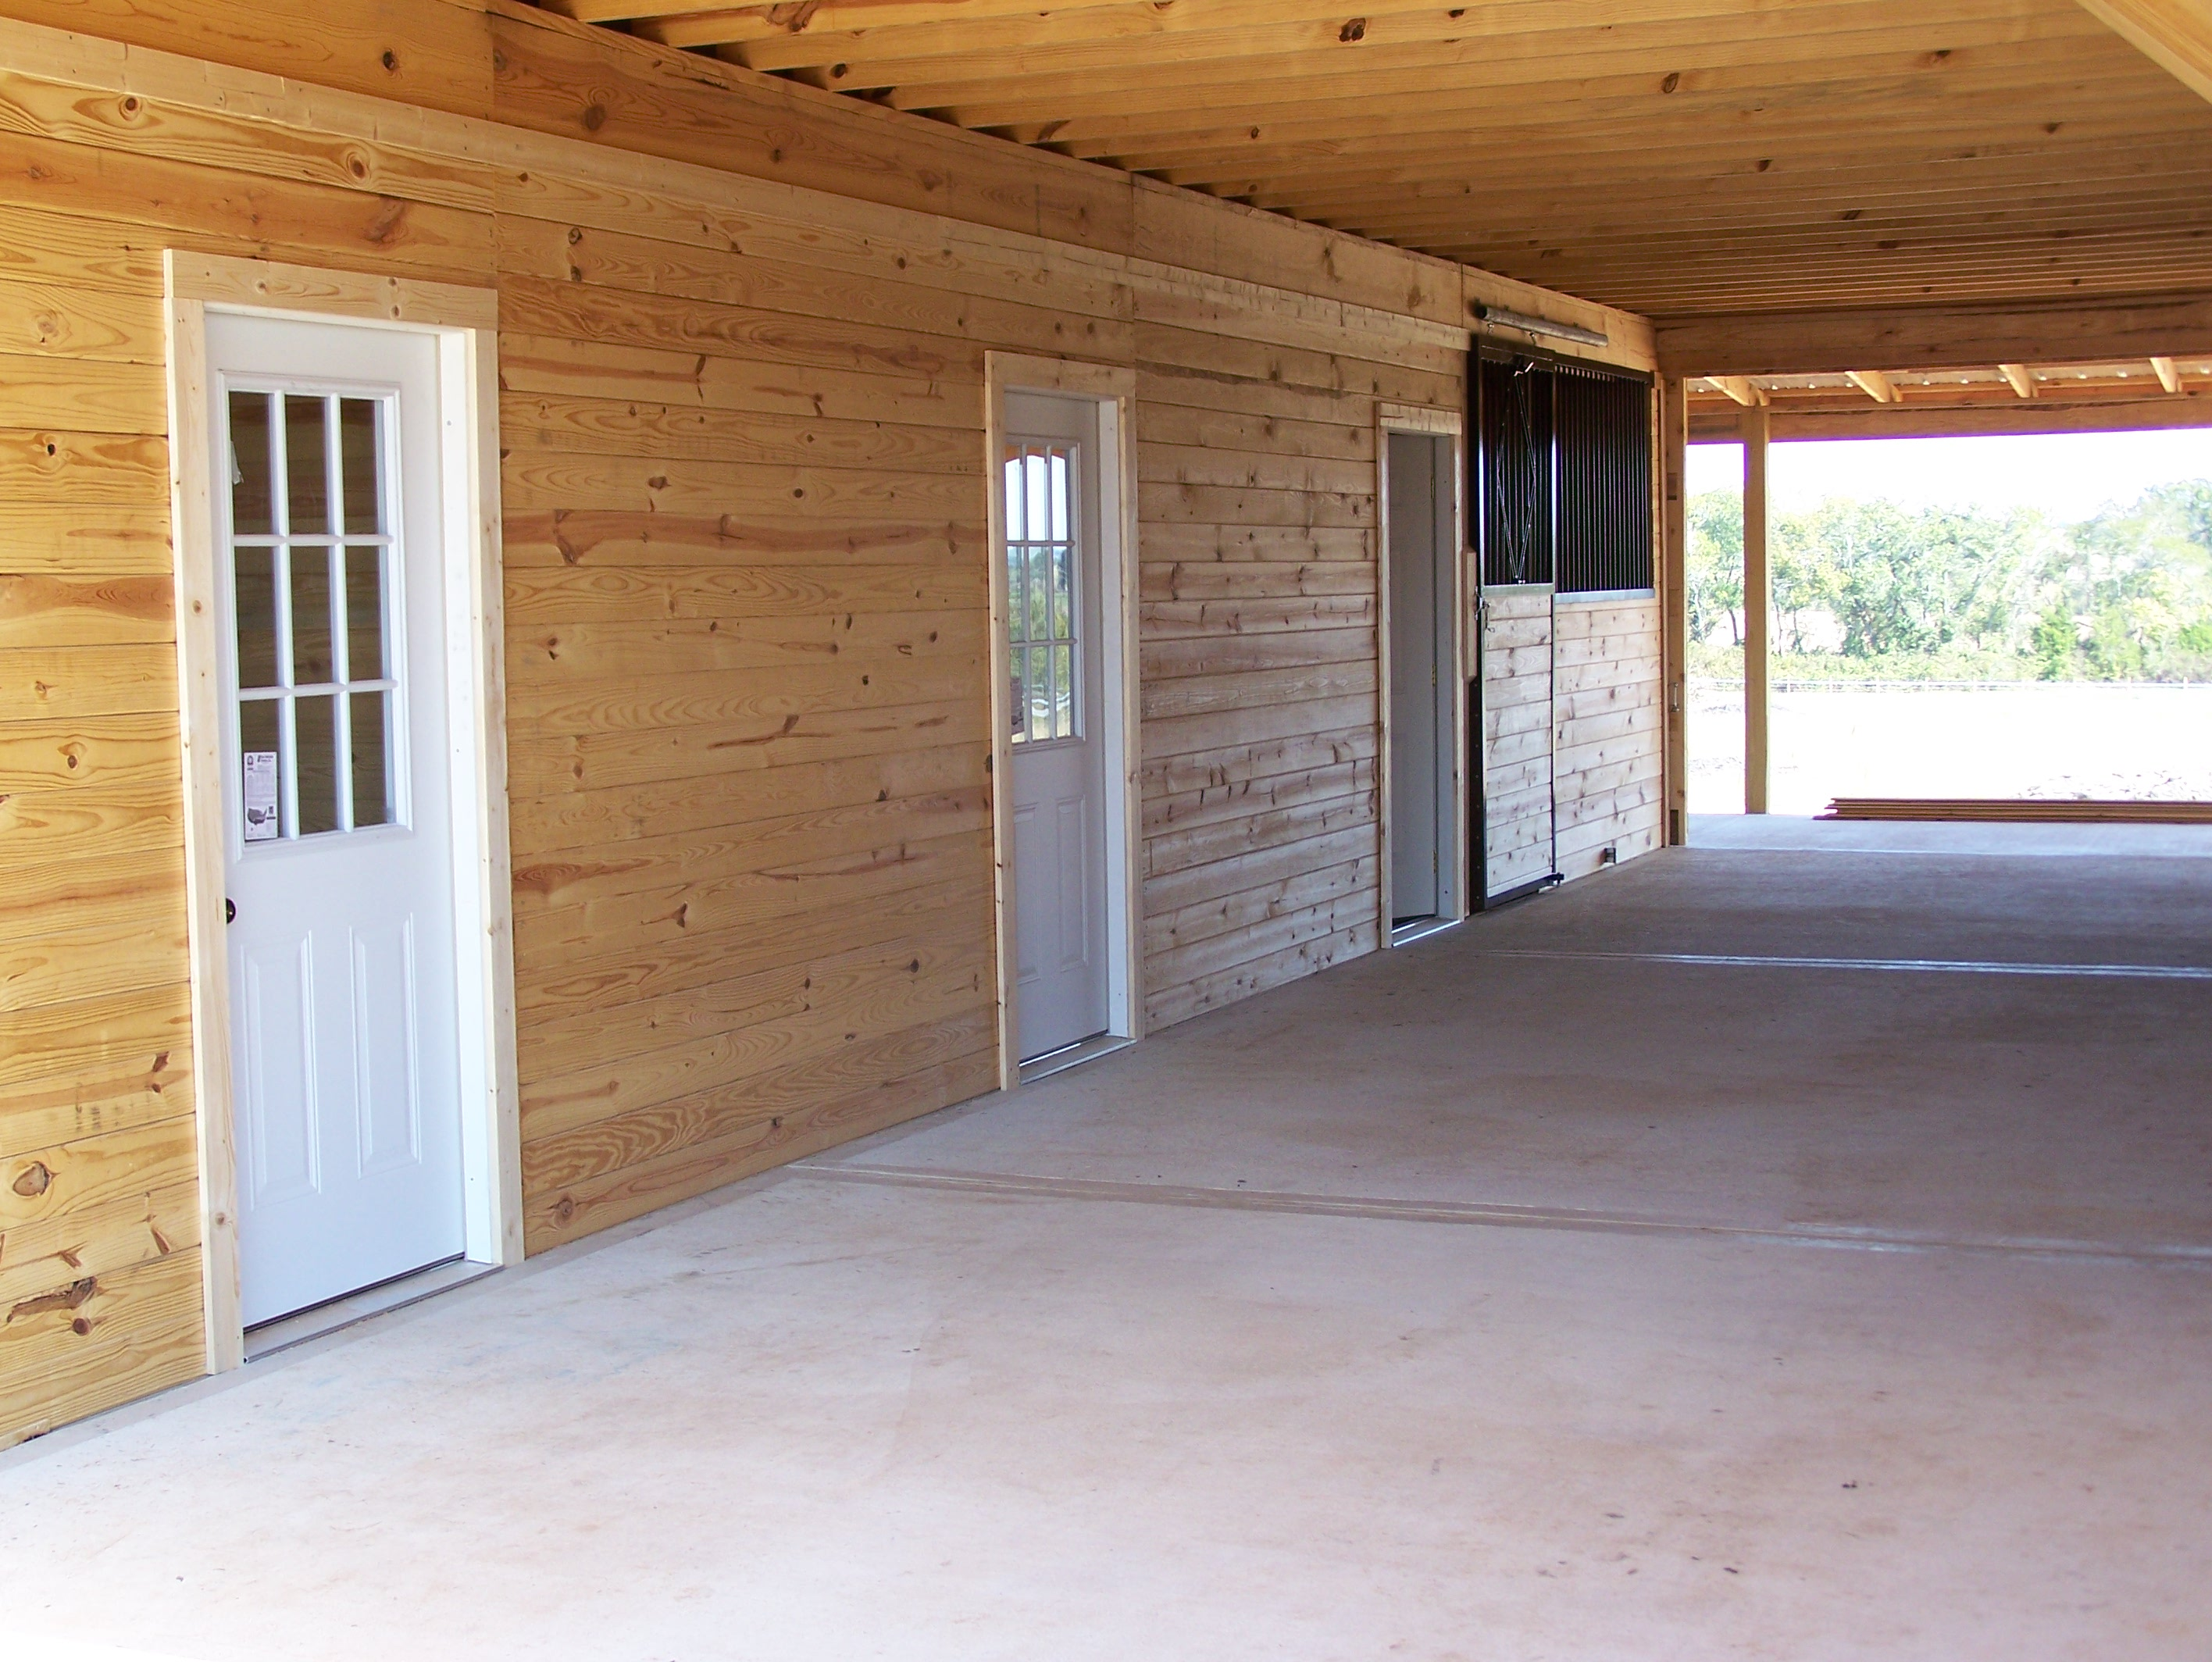 interior photos - Horse Barn Design Ideas